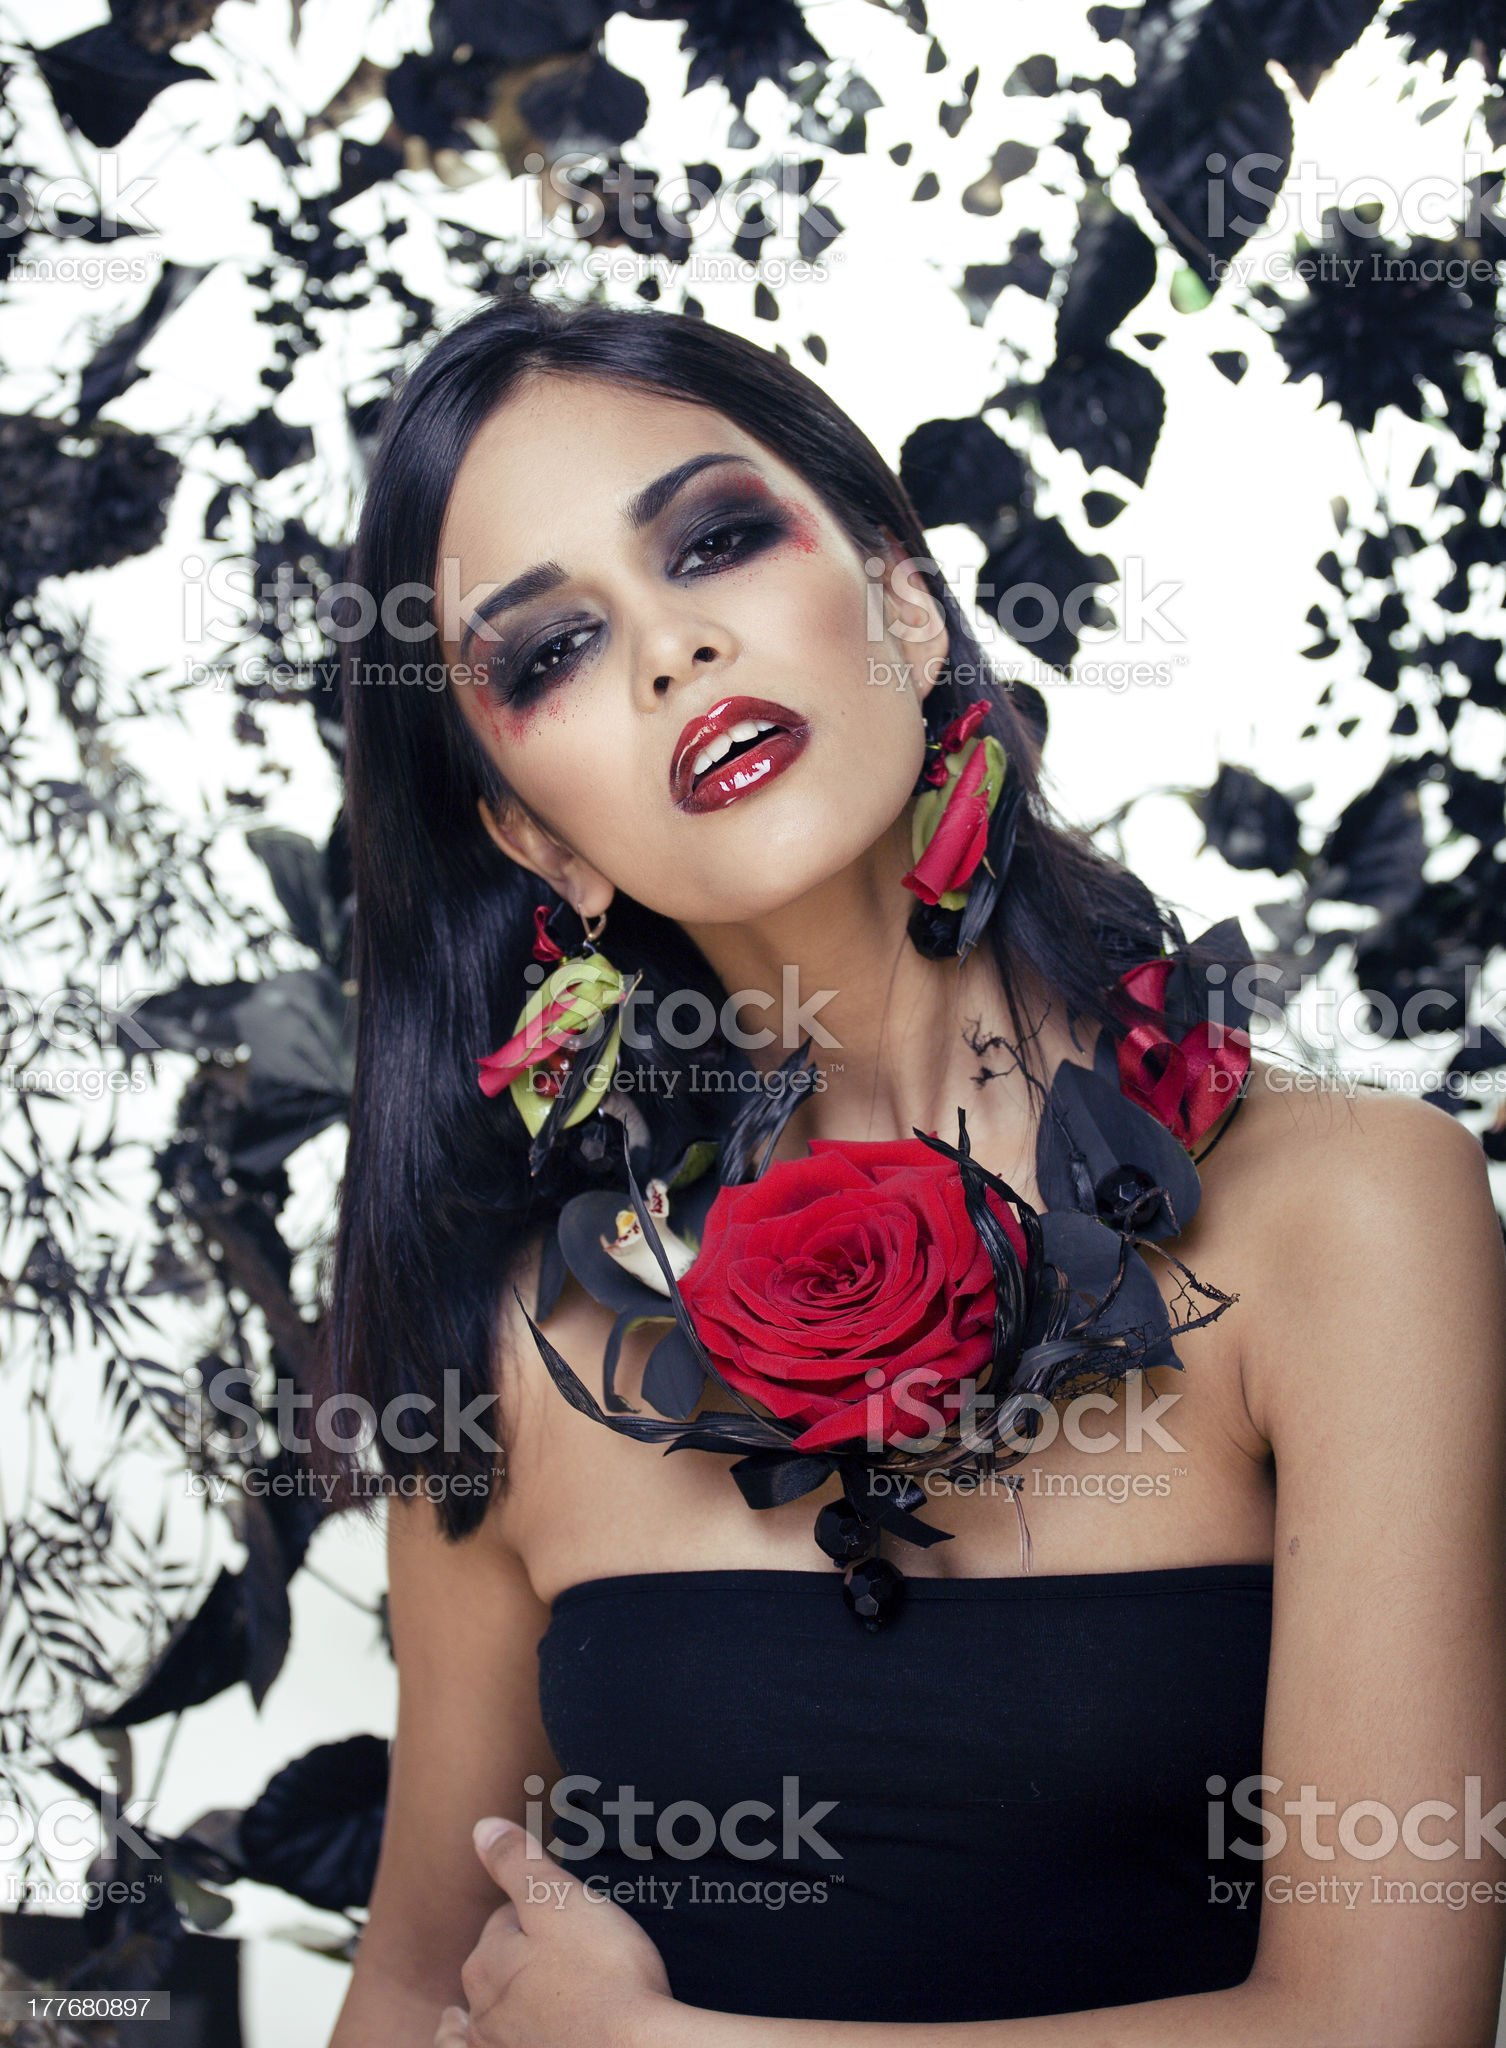 beauty woman with make up and rose jewelry royalty-free stock photo